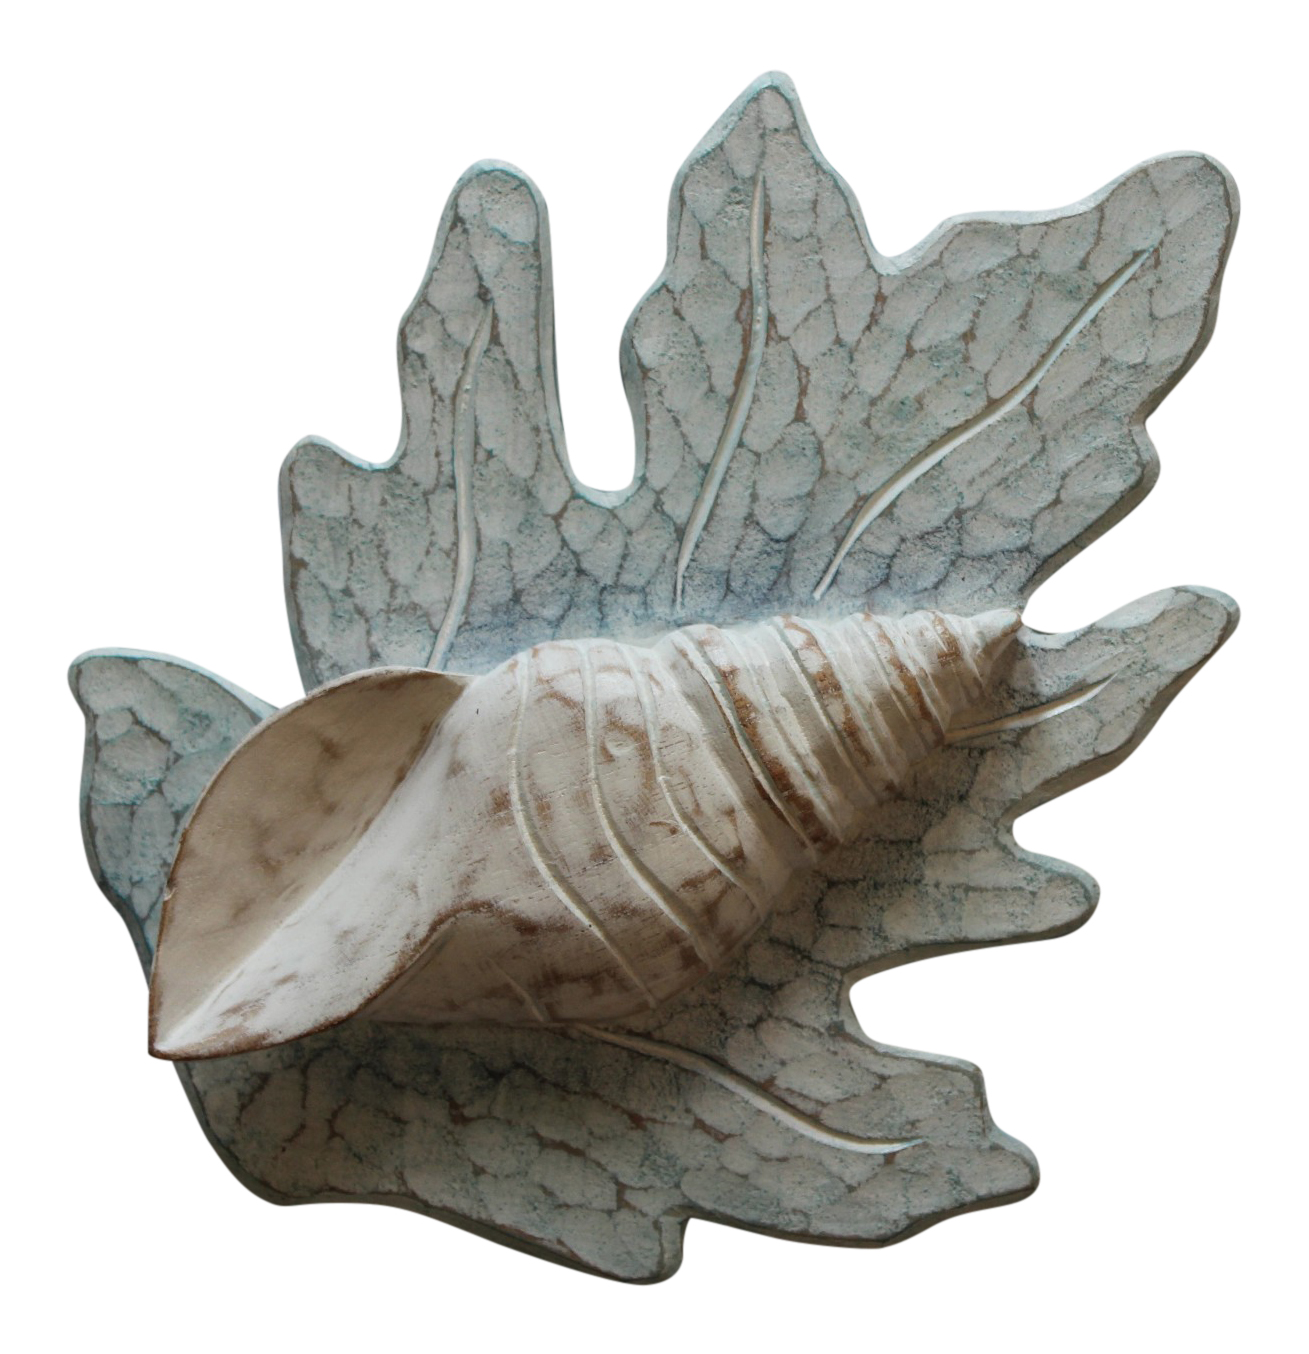 White Turban Shell on Aqua Reef Carved Wood Wall Plaque 11 Inches